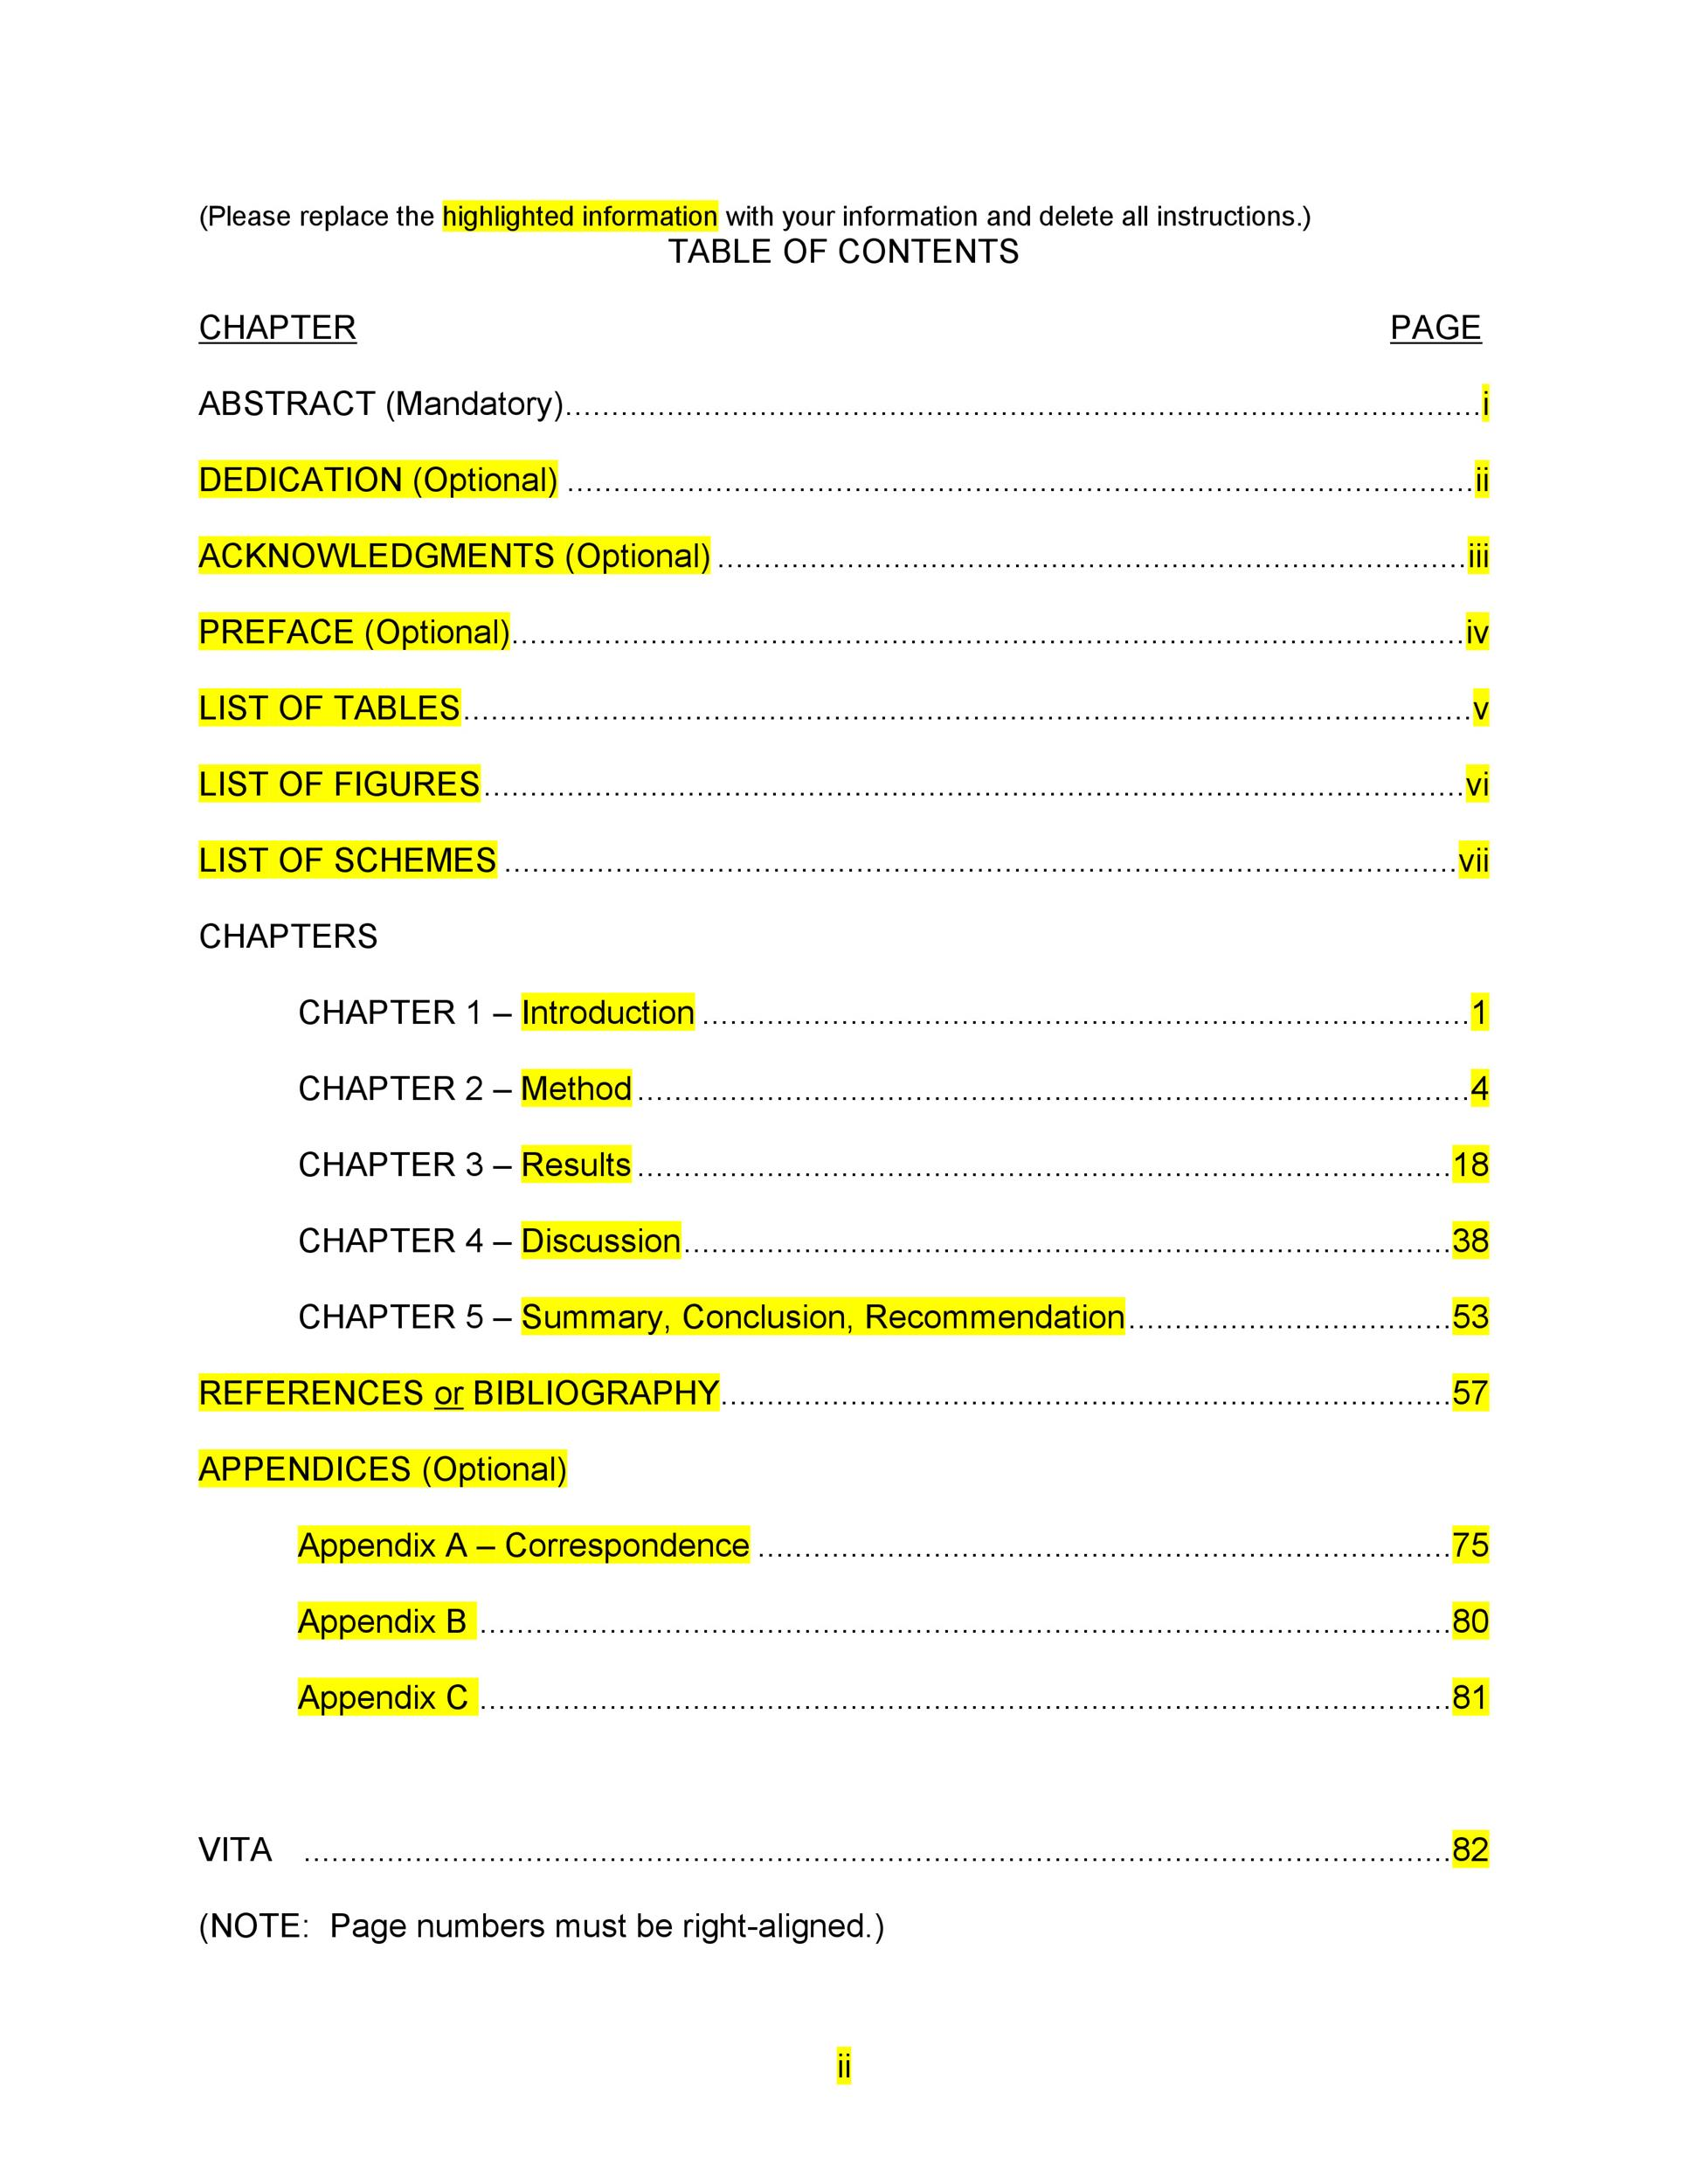 20 Table Of Contents Templates And Examples - Template Lab